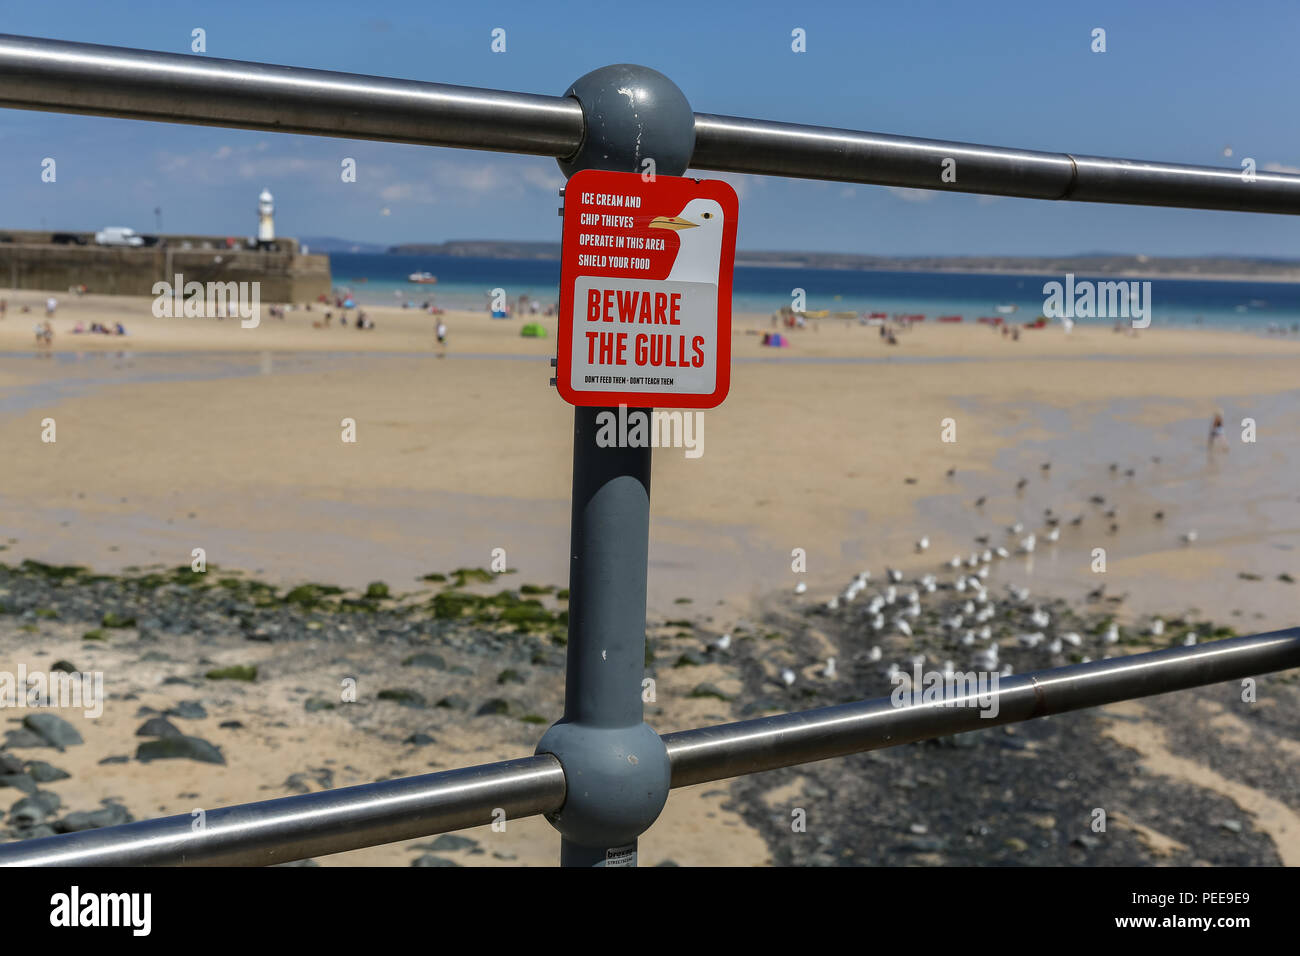 Beware the seagulls sign near the beach. Seagulls steel icecreams and other food of tourists. Don't feed them - Stock Image